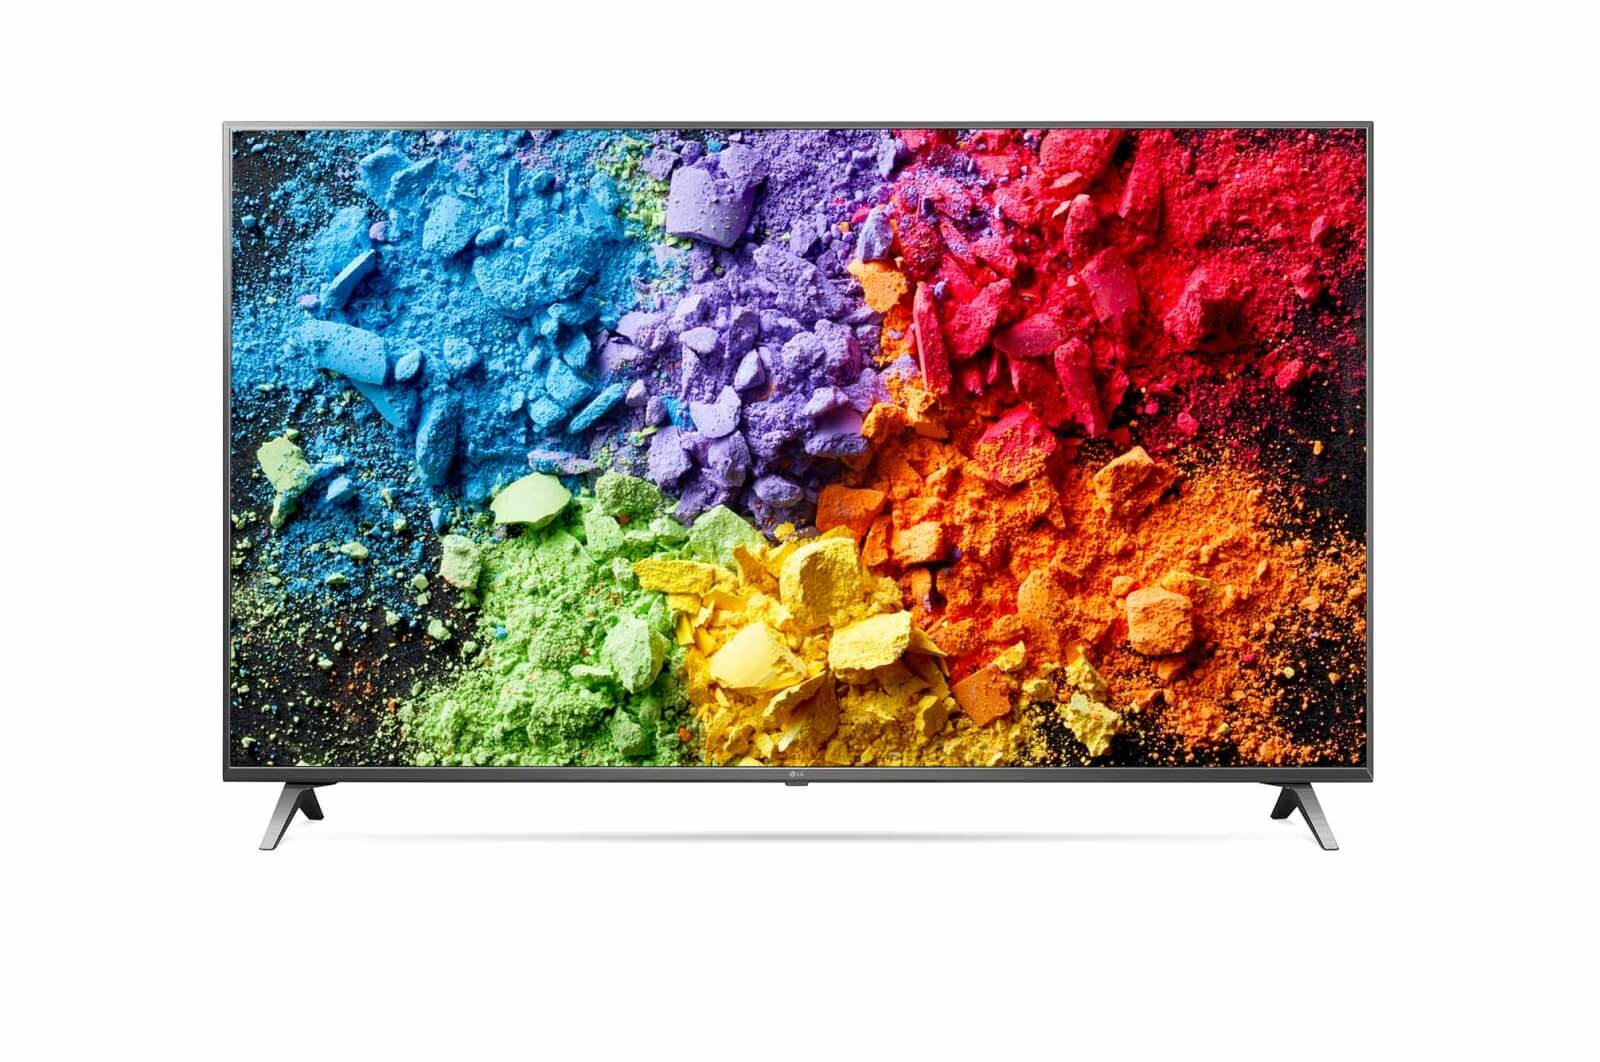 LG SK8000 SK8000PLB SK8000PUA 65-Inch 55-Inch 49-Inch Super UHD 4K HDR Premium Smart LED TV with Freeview Play